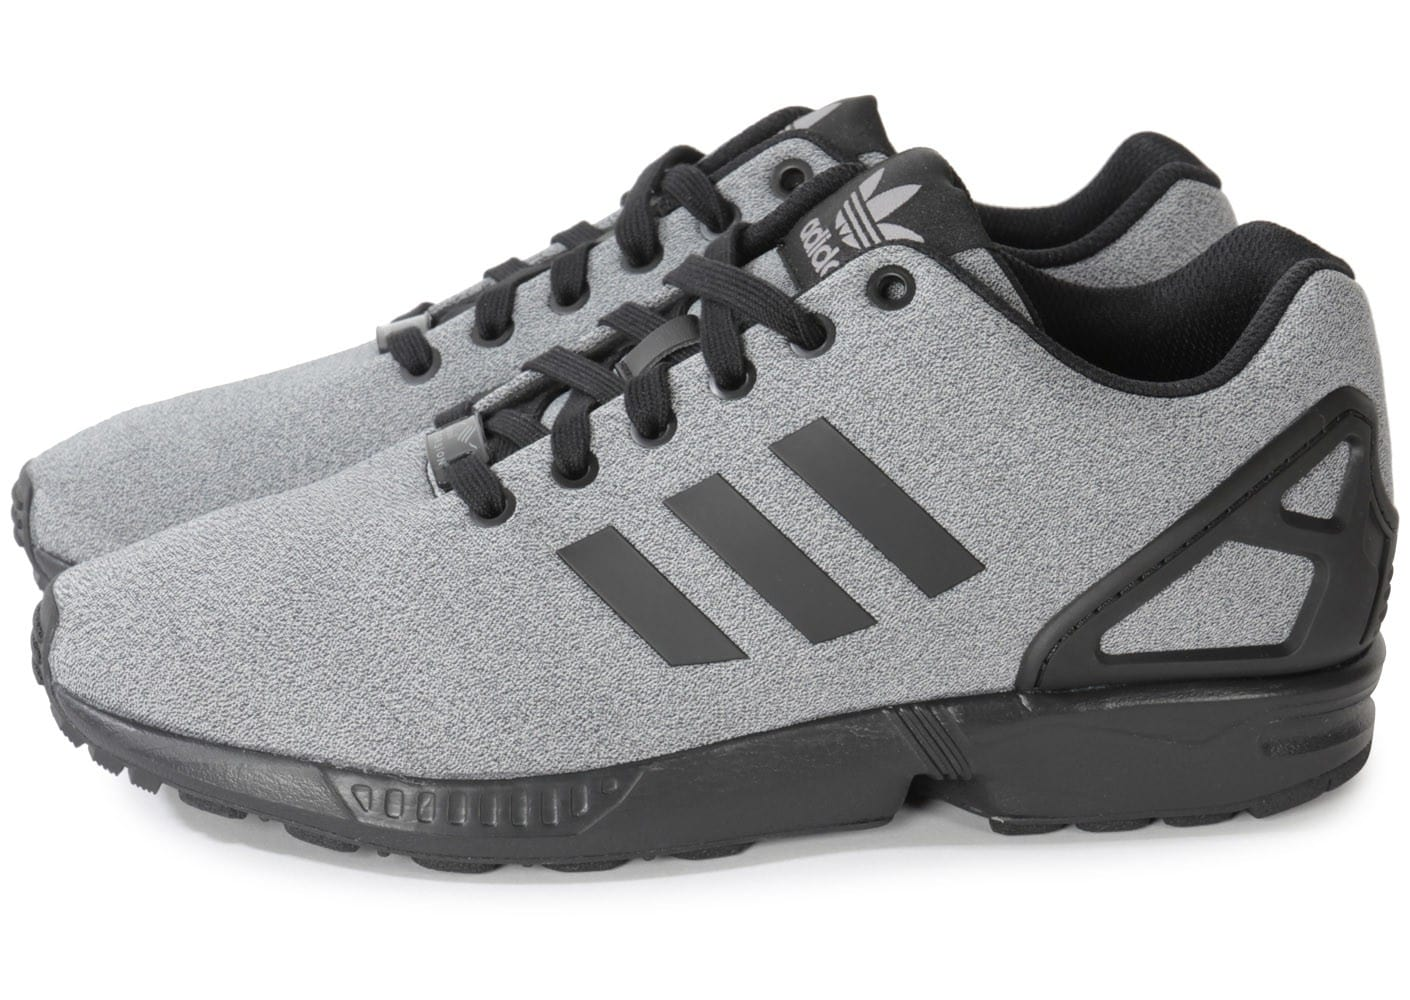 adidas zx flux jersey gris chaussures homme chausport. Black Bedroom Furniture Sets. Home Design Ideas